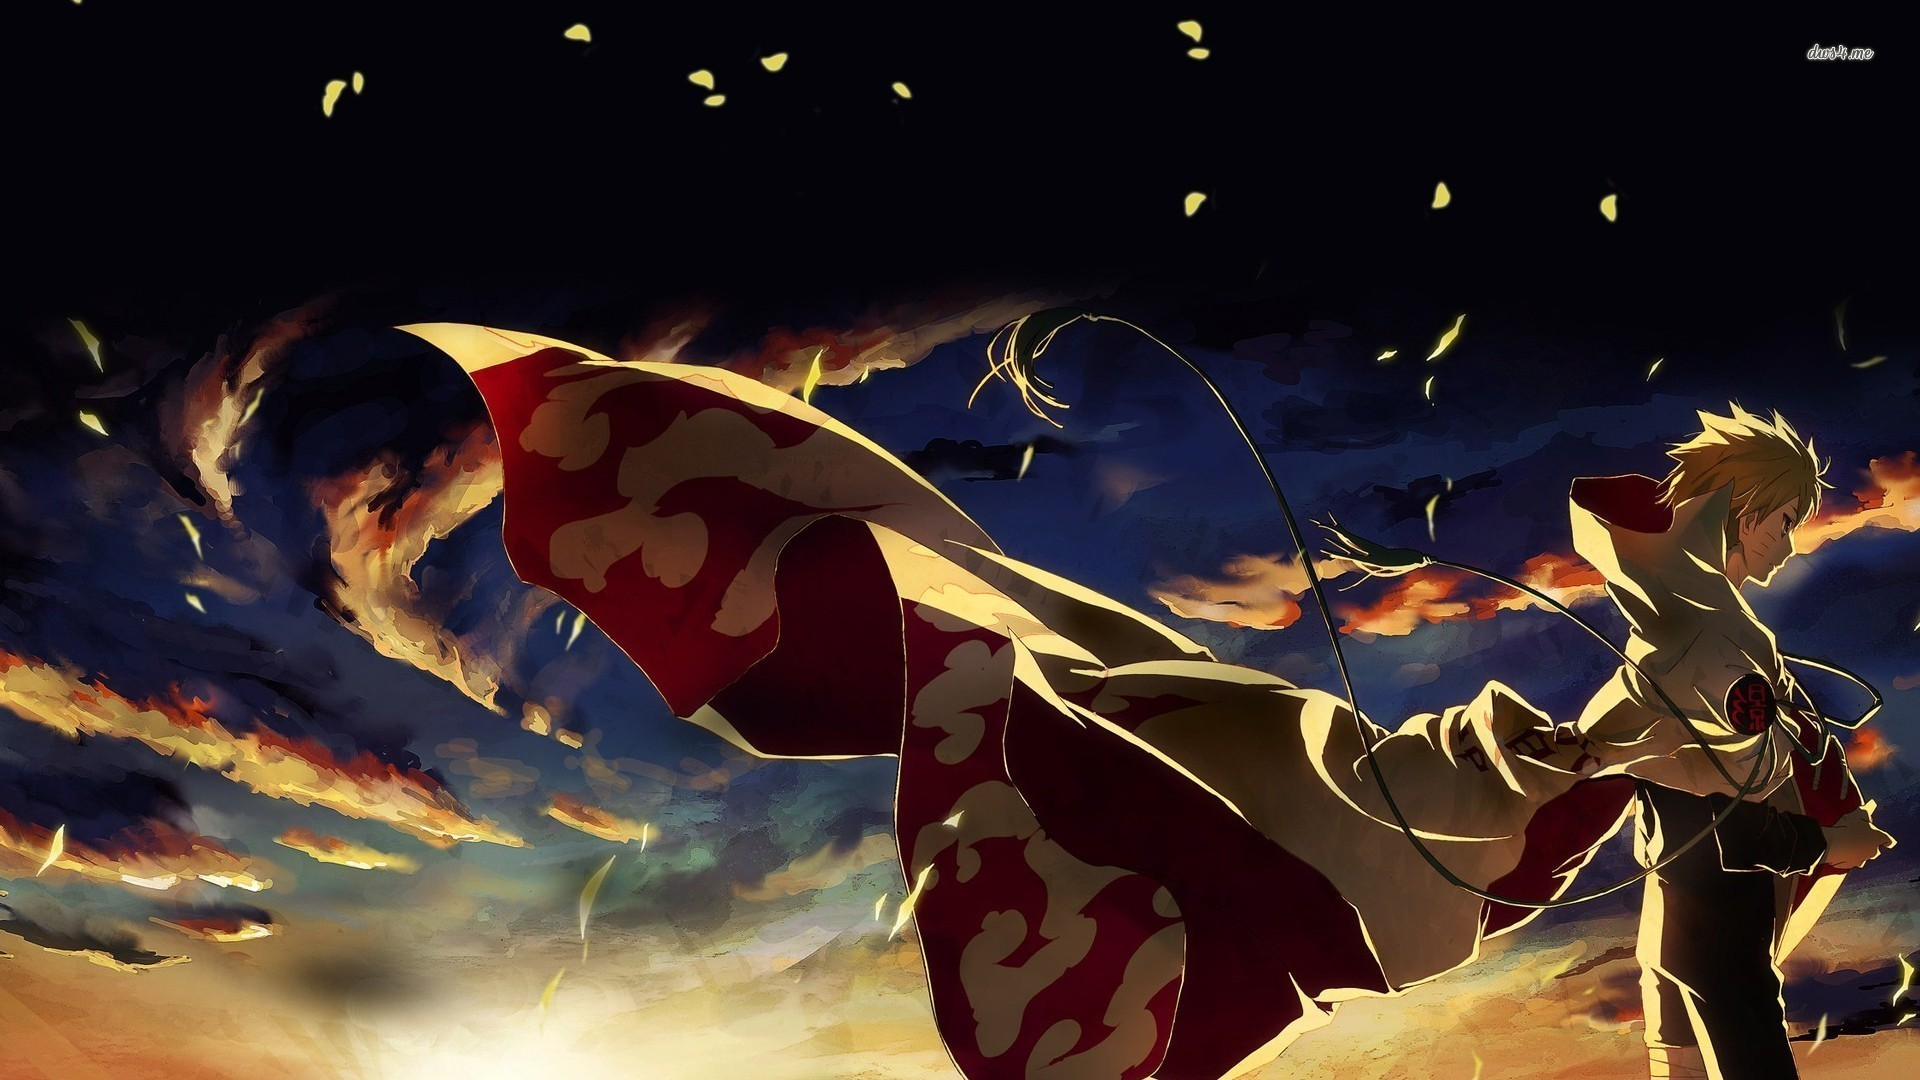 1920x1080  Top Best Naruto Wallpapers Wallpaper Collection Best Naruto  Wallpapers Wallpapers Just For You! for